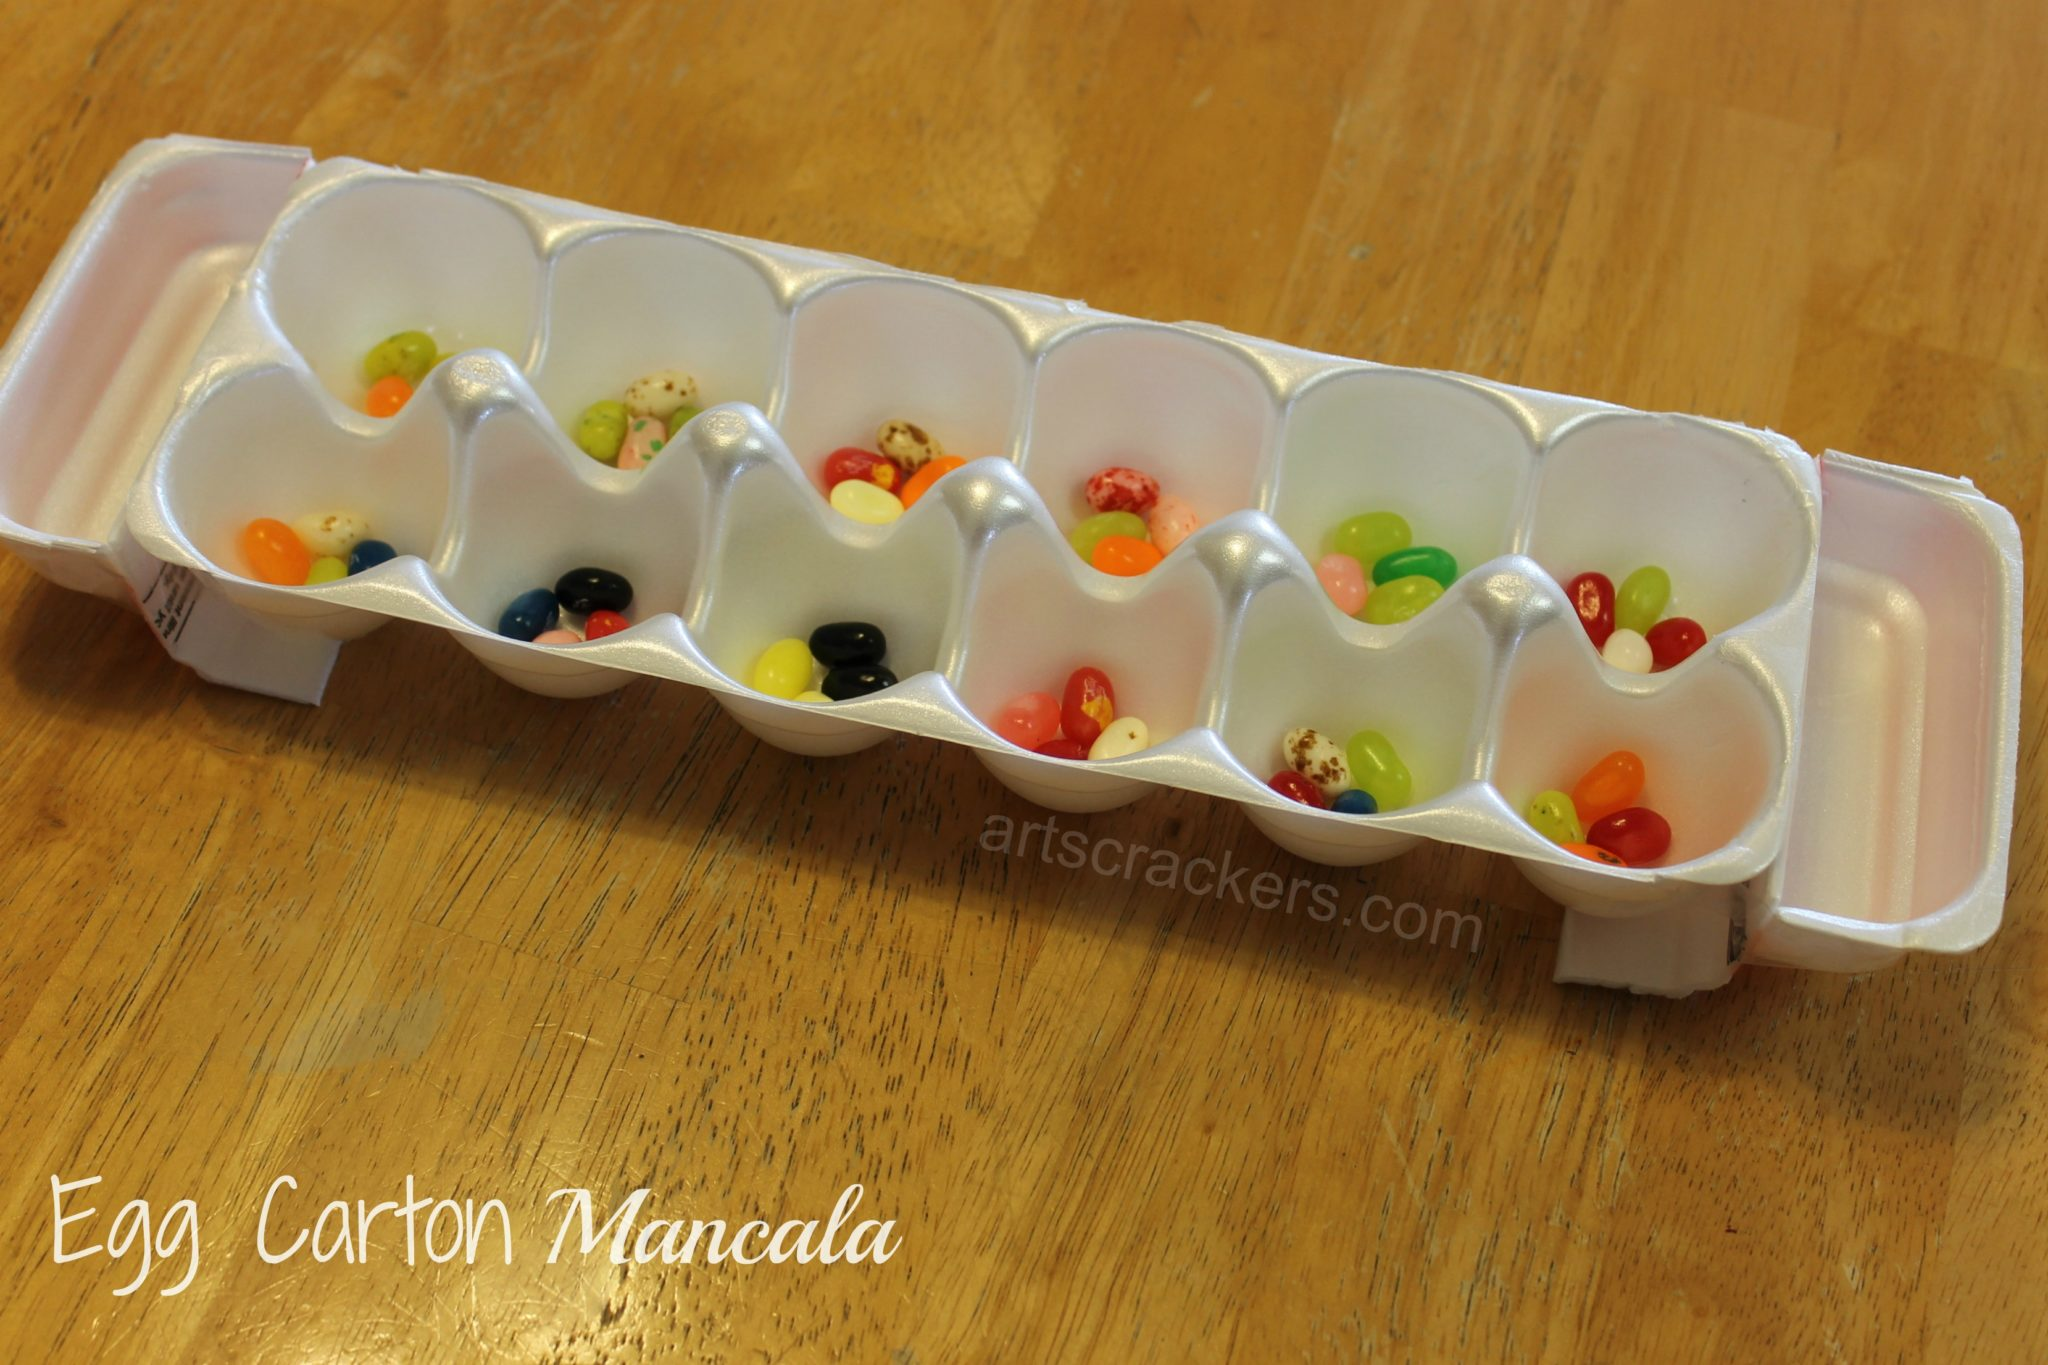 DIY Egg Carton Mancala Game